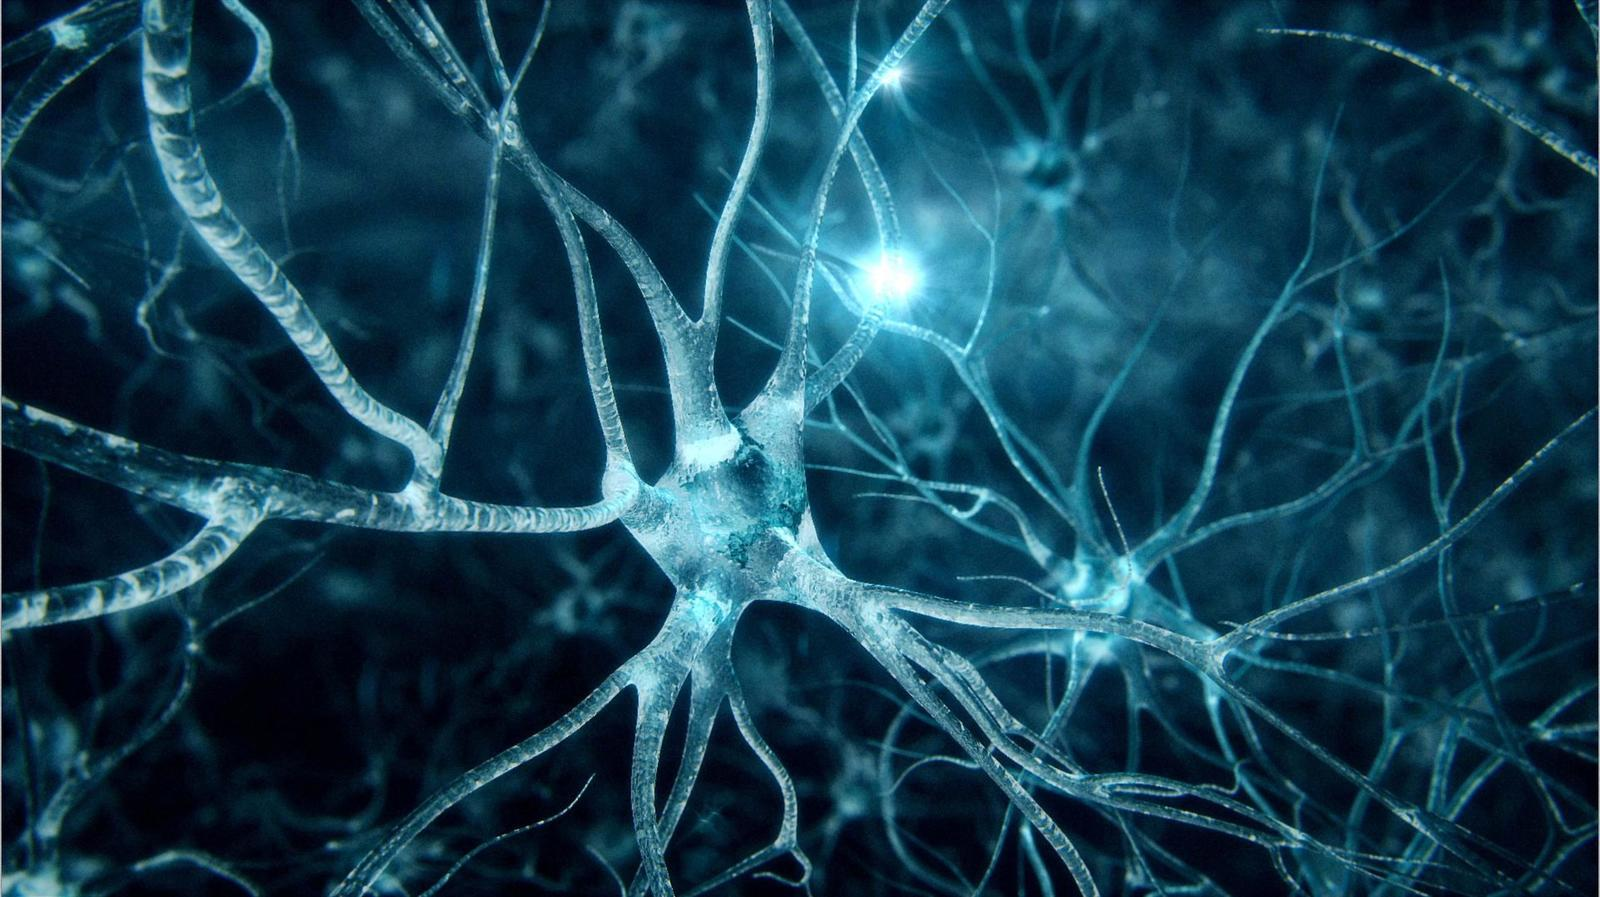 abstract-neurons-wallpaper-1 (1).jpg